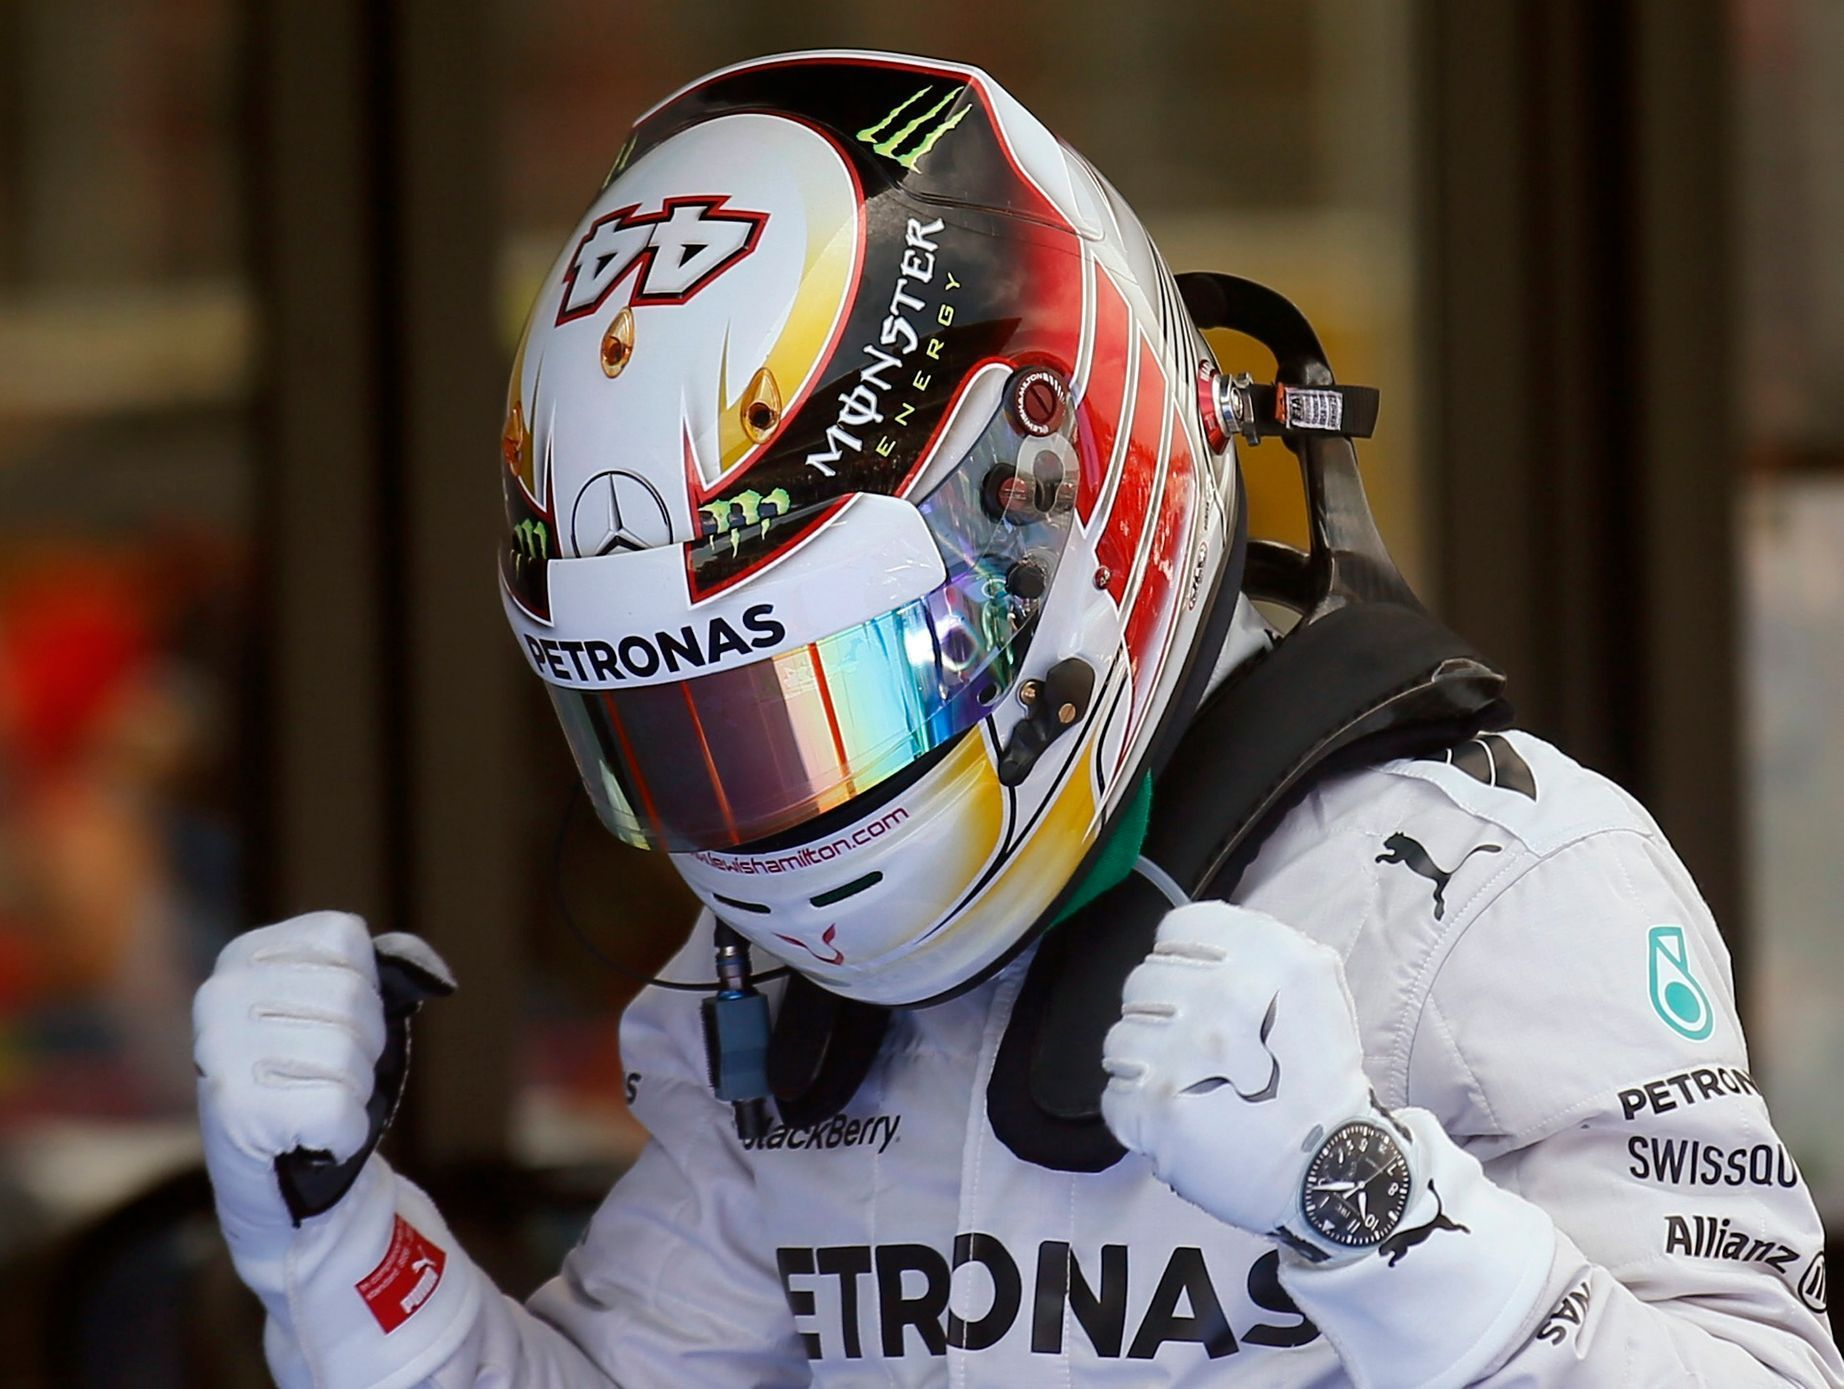 Mercedes Formula One driver Lewis Hamilton celebrates after taking the pole position at the qualifying session of the Spanish F1 Grand Prix at the Barcelona-Catalunya Circuit in Montmelo